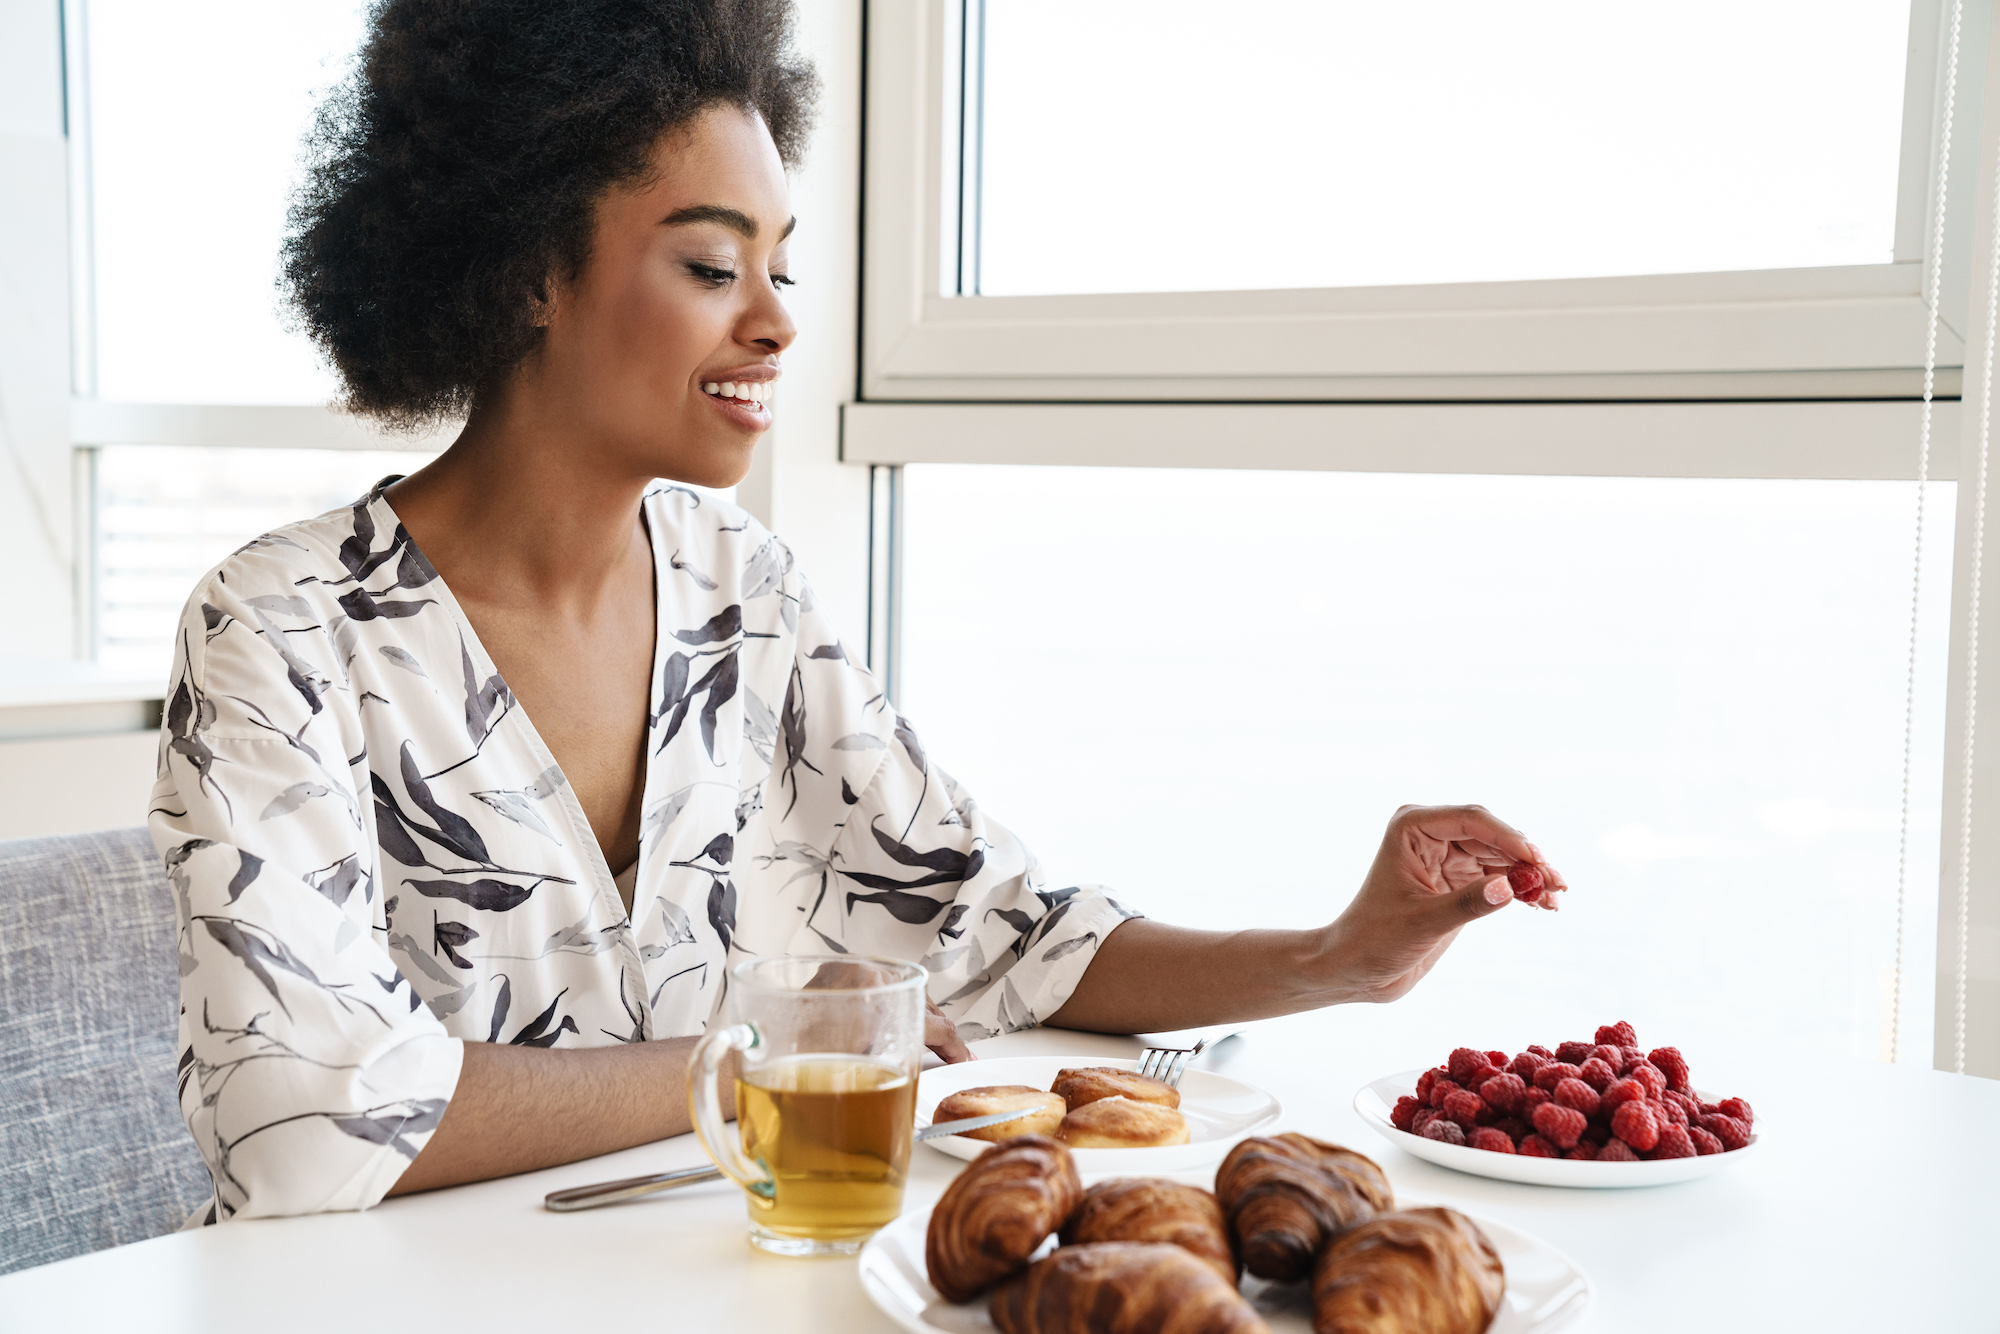 Cheerful beautiful woman having breakfast in kitchen, eating croissants and berries